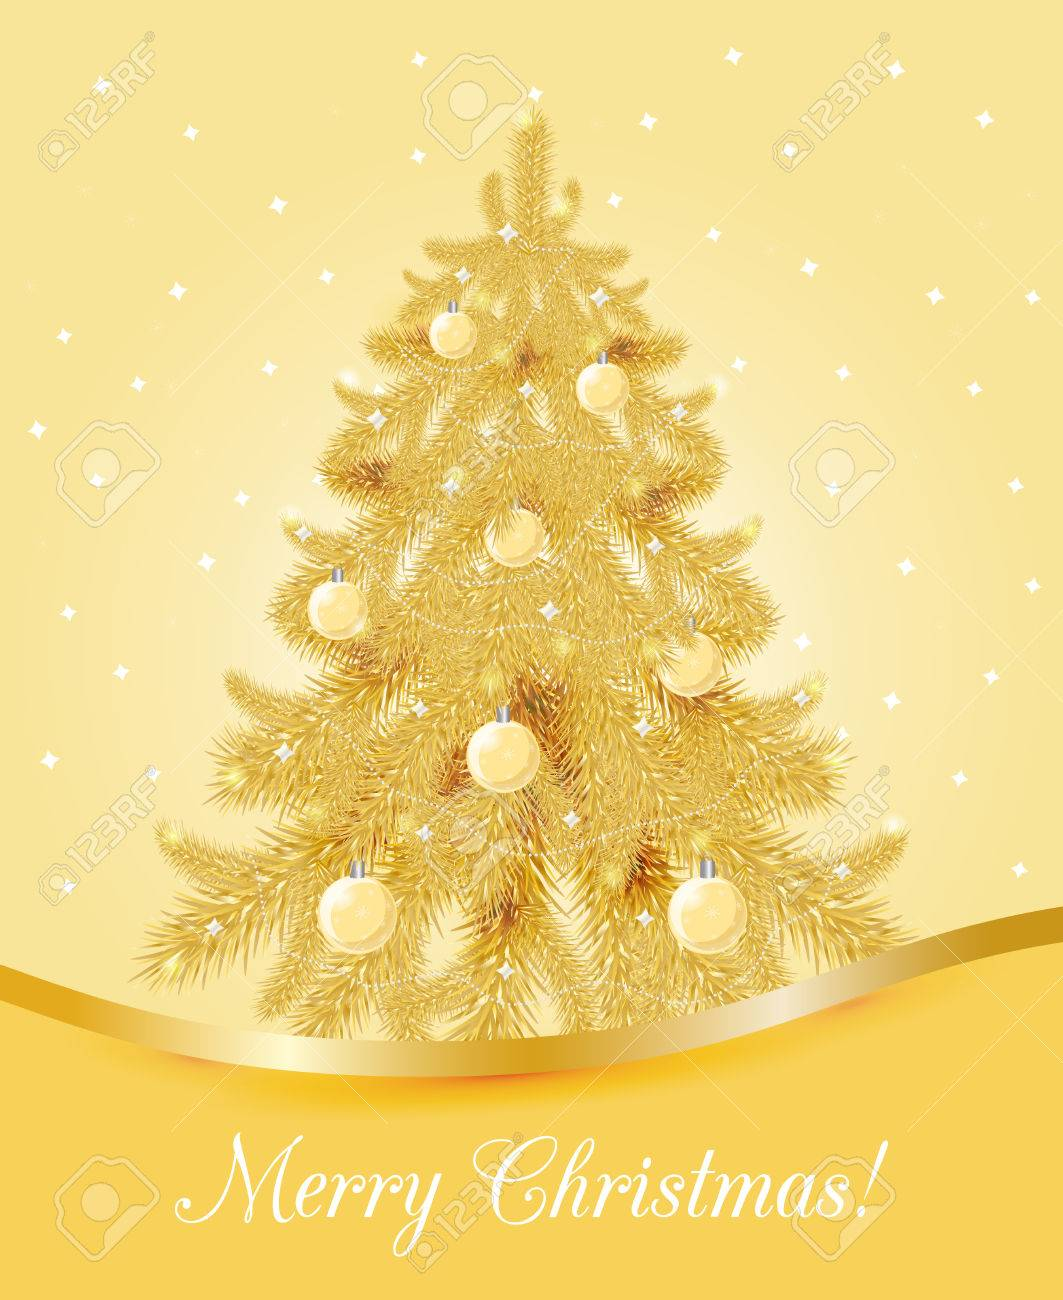 greeting card with golden christmas tree christmas and new year